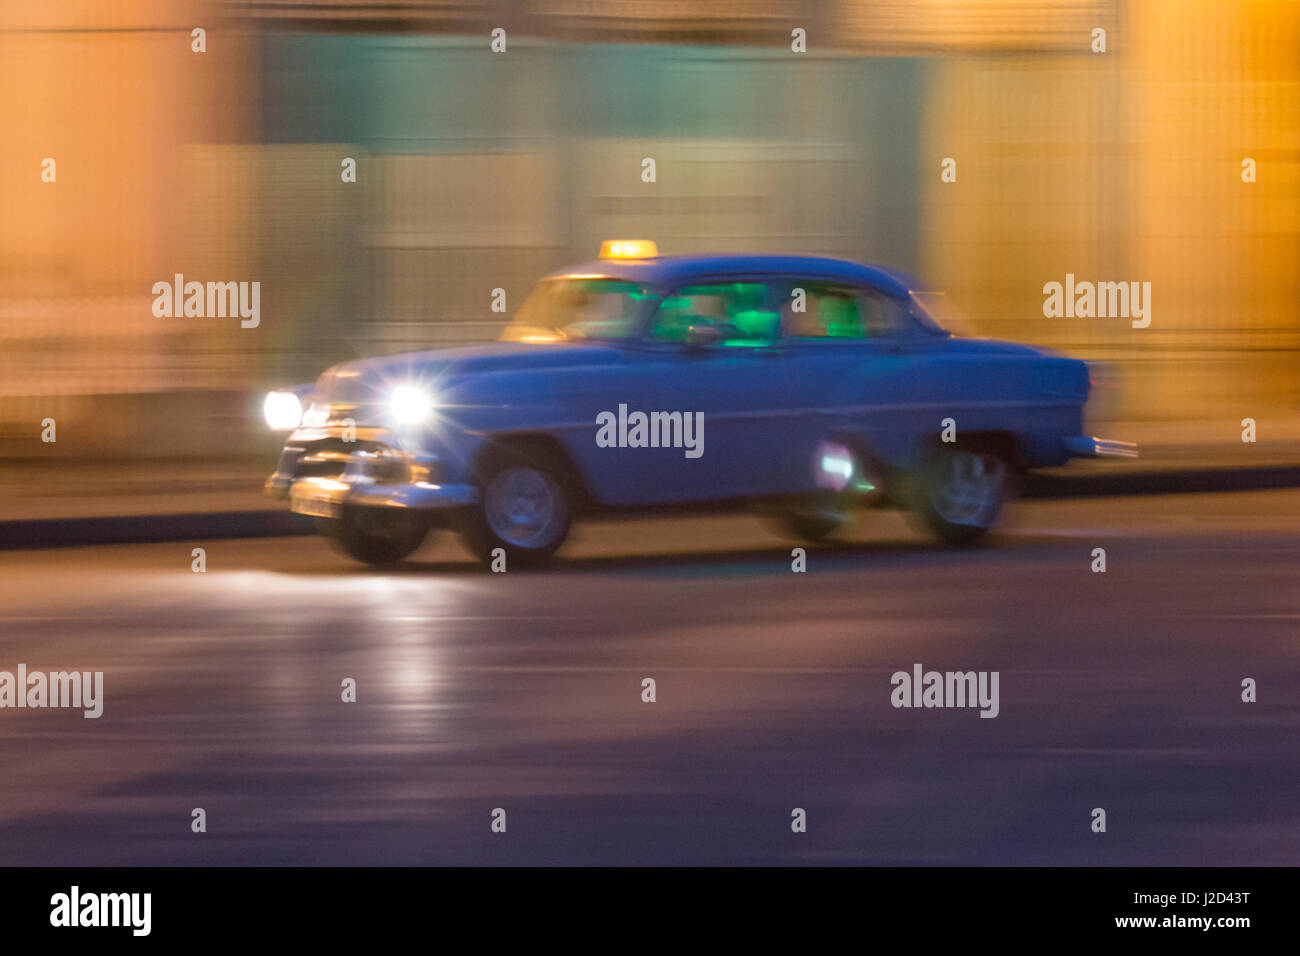 Cuba, Havana. 1953 Chevrolet. collectible, vintage cars along Havana's old city center (Editorial Use Only) - Stock Image